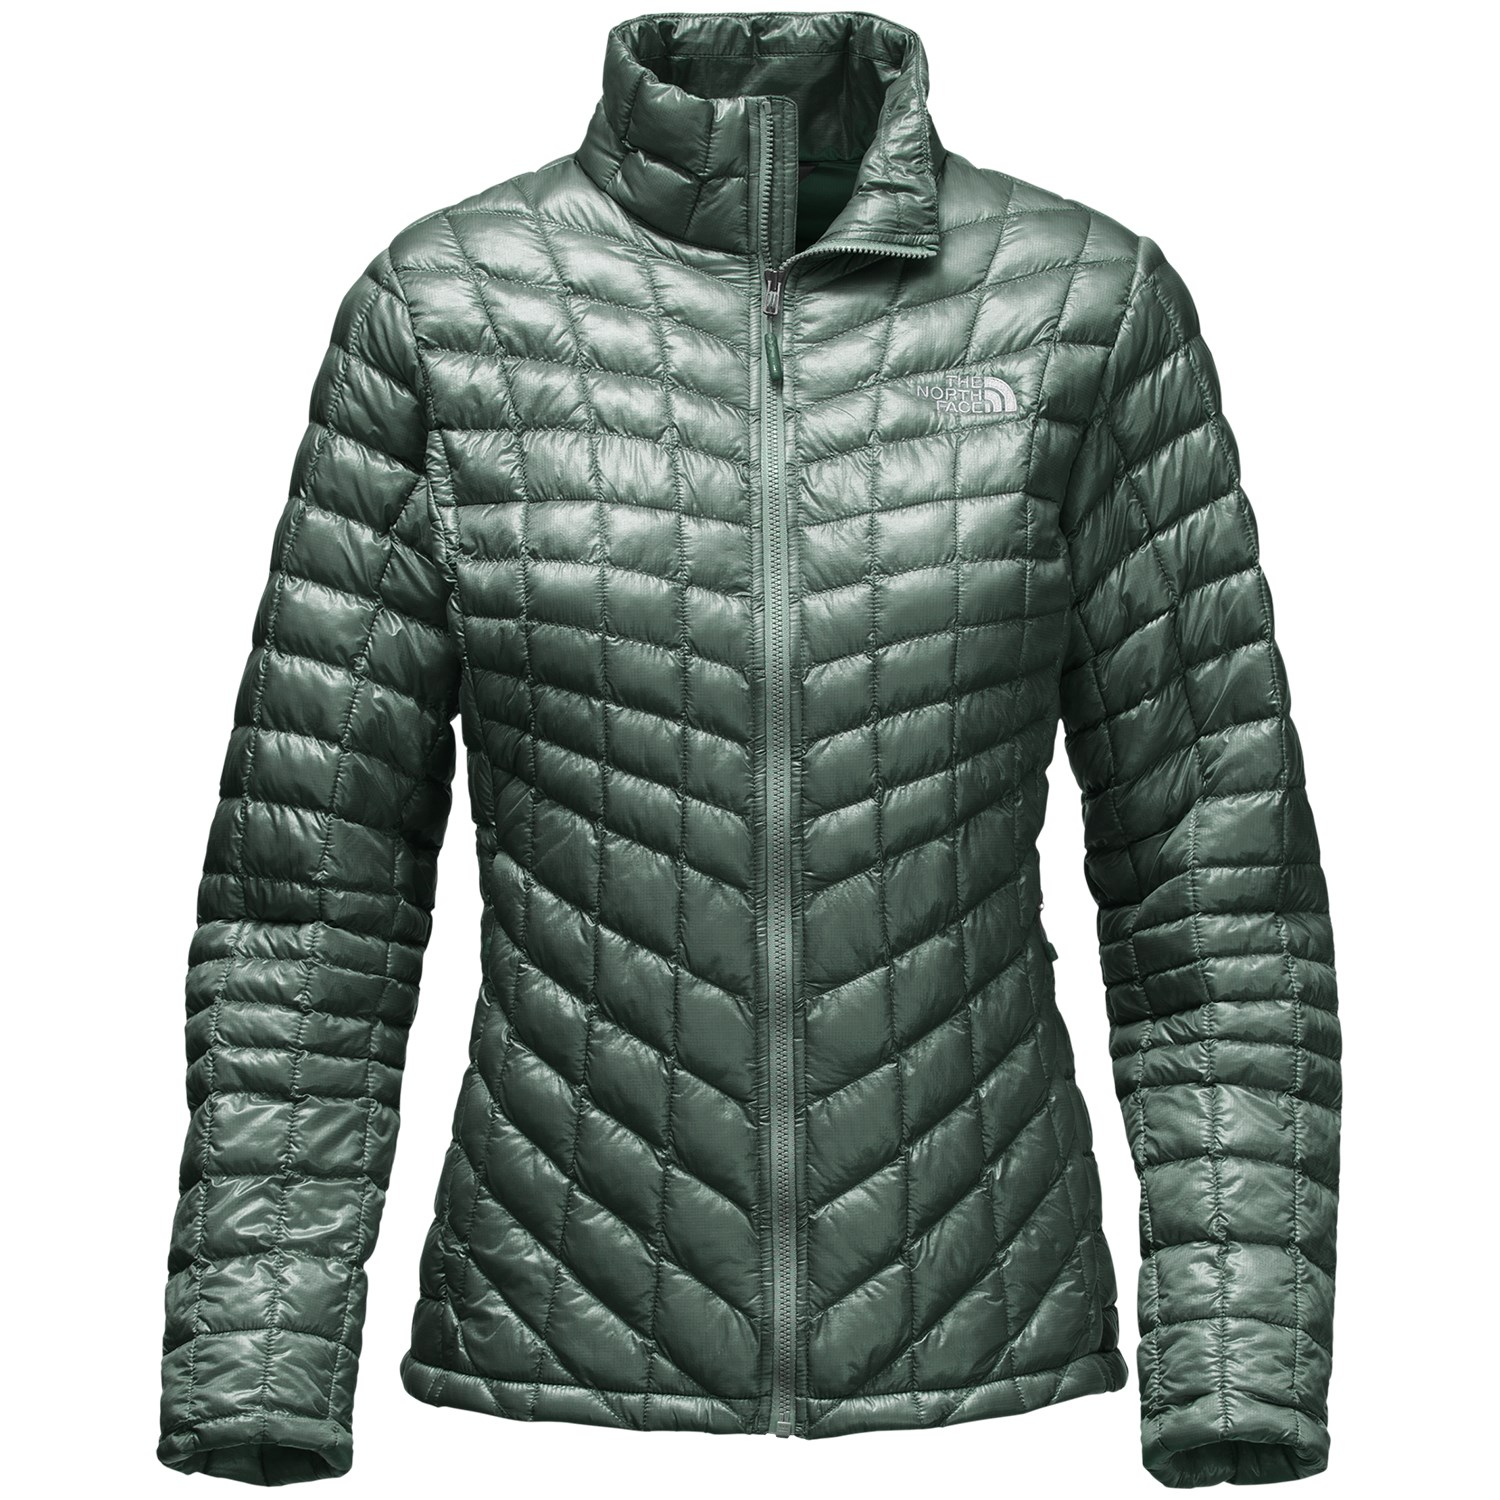 1e22eeb14 The North Face ThermoBall Full-Zip Jacket Women's 2017 | FREESKIER